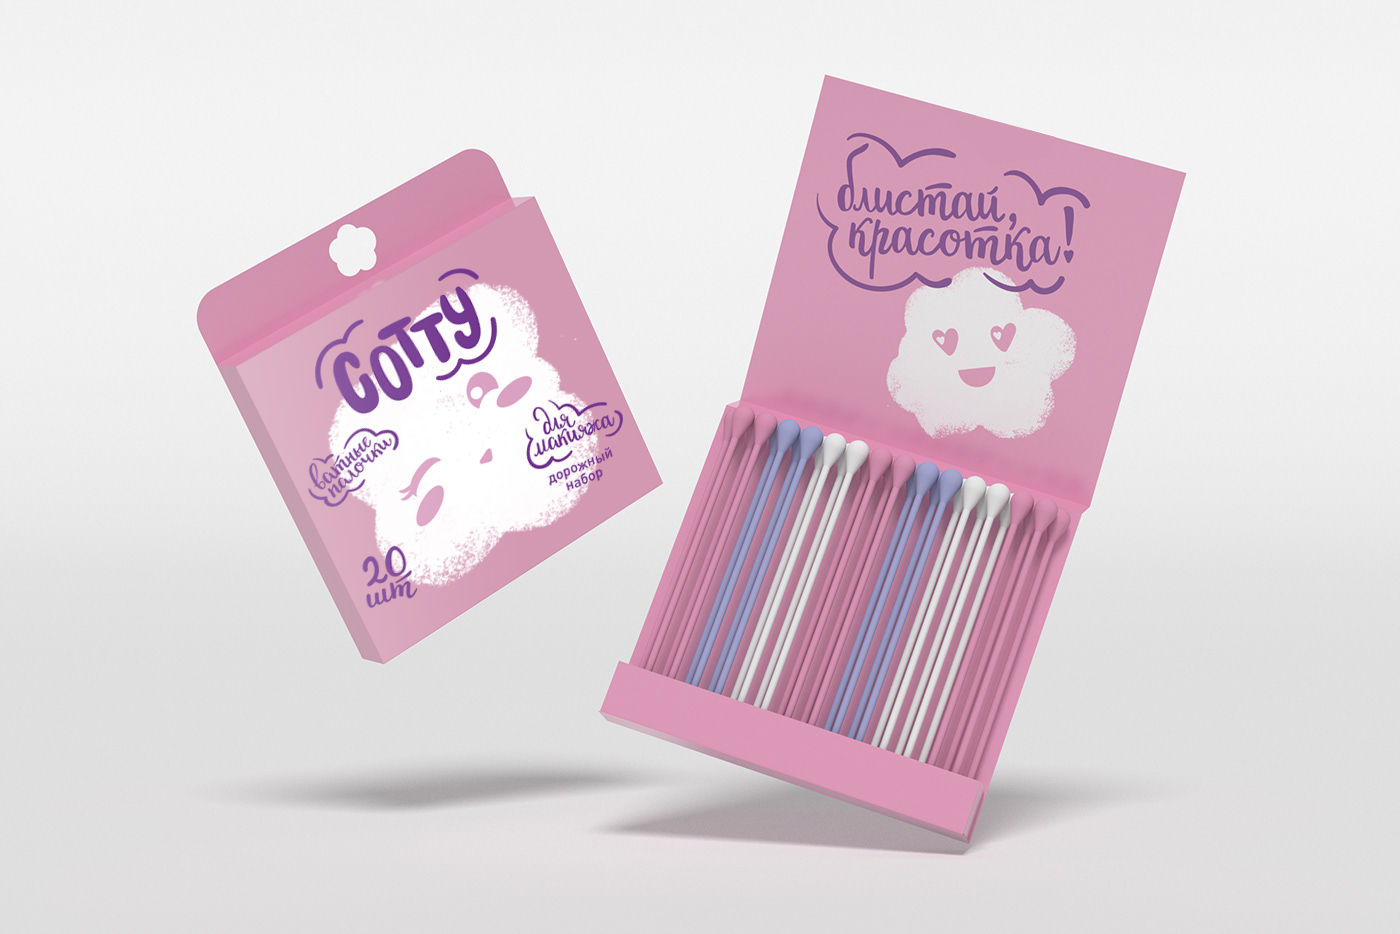 """""""Cotty"""" Brand and Packaging of Cotton Products"""